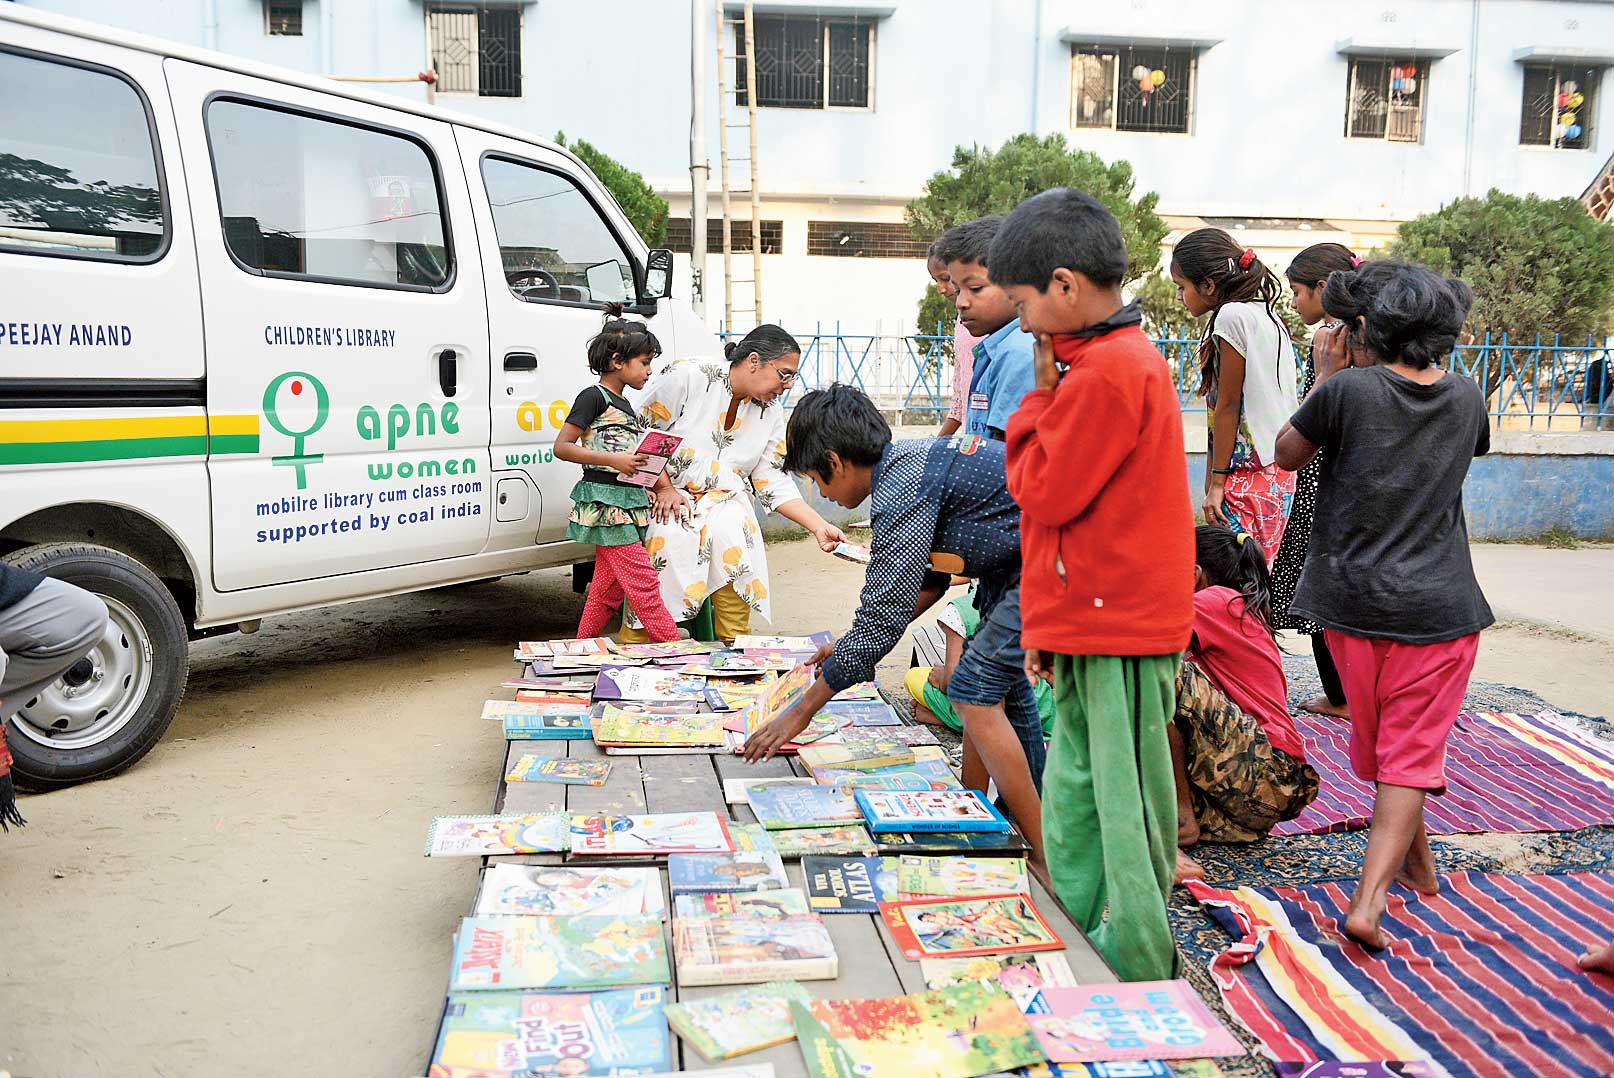 Children browse books brought by the mobile library in Sonagachhi on Monday.